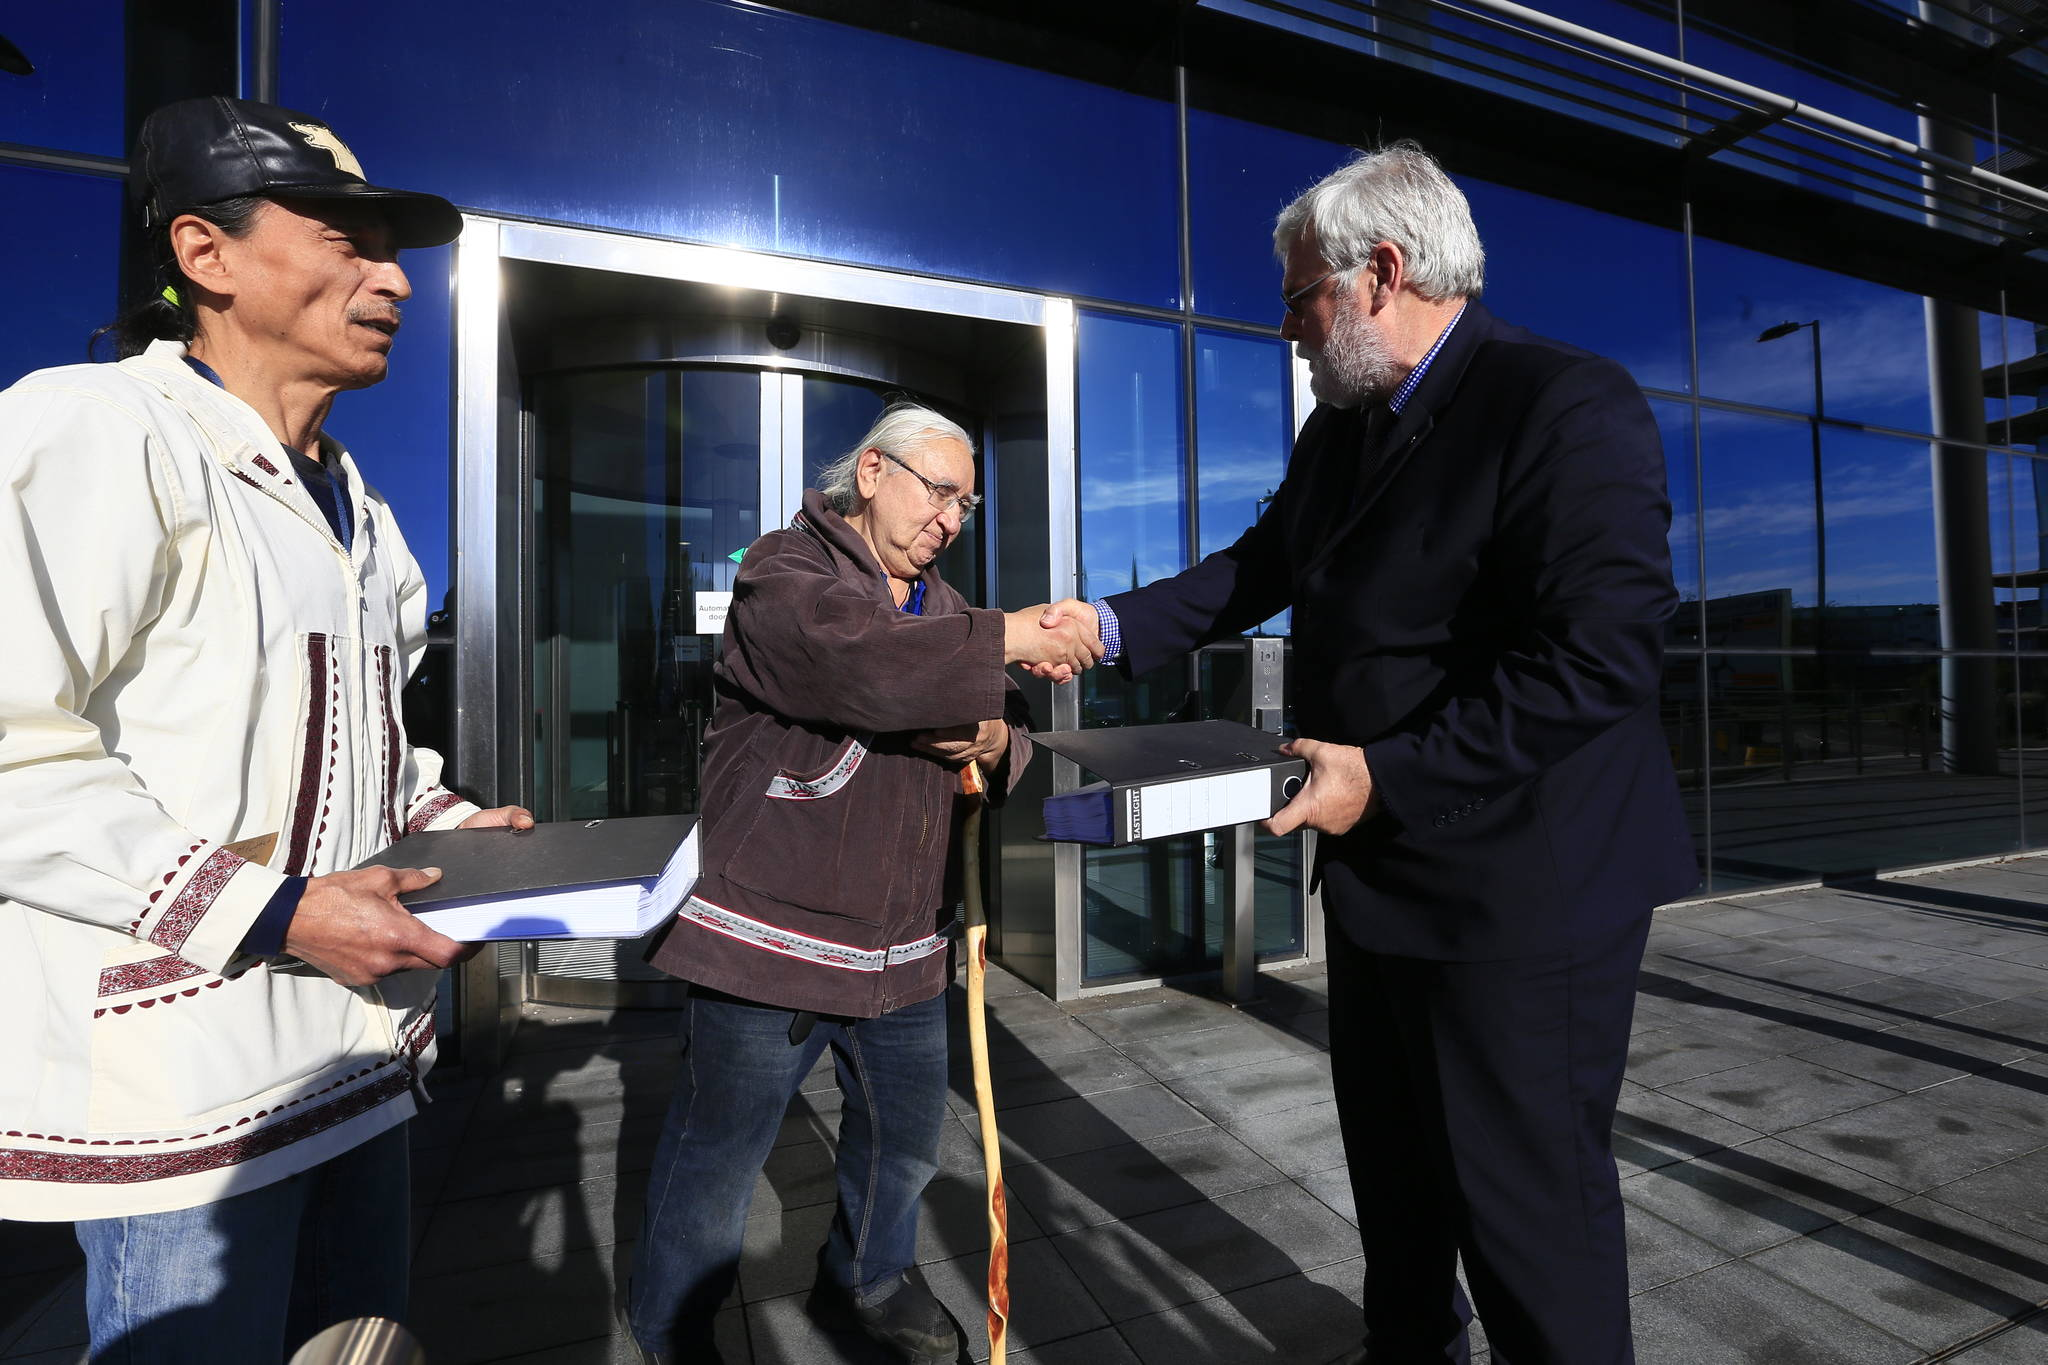 George Edwardson, board member for Inuit Circumpolar Council-Alaska and President of the Inupiat Community of the Arctic Slope (ICAS) hands the first of three binders holding over 104,000 signatures on an international petition calling for Carnival Corporation to end its use of heavy fuel oil in the Arctic and Subarctic to Tom Strang, Senior Vice President of Maritime Affairs for cruise industry giant. In July this year, the Inuit Circumpolar Council issued a formal Declaration calling for a phaseout of heavy fuel oil in the region. (Courtesy Photo | Jiri Rezac via Stand.earth)